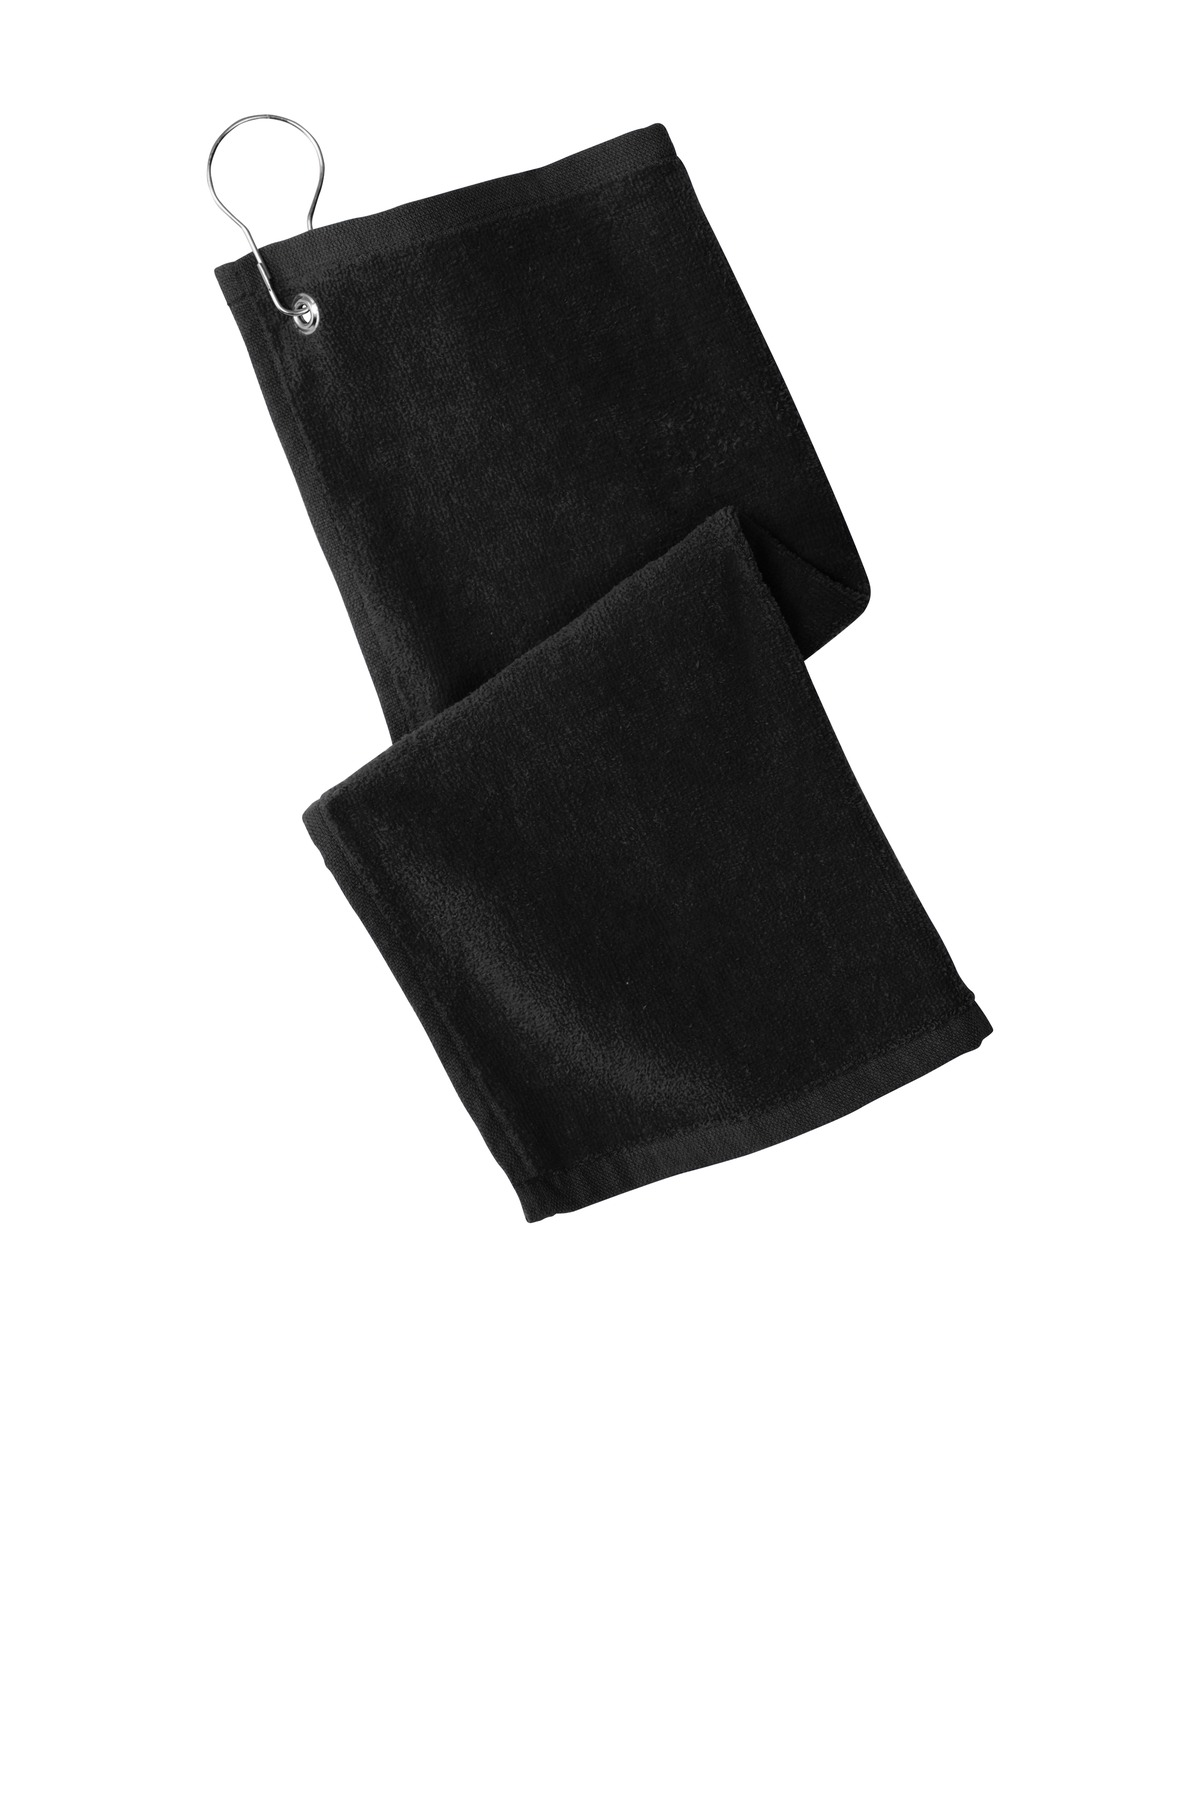 Port Authority  ®  Grommeted Hemmed Towel PT400 - Black